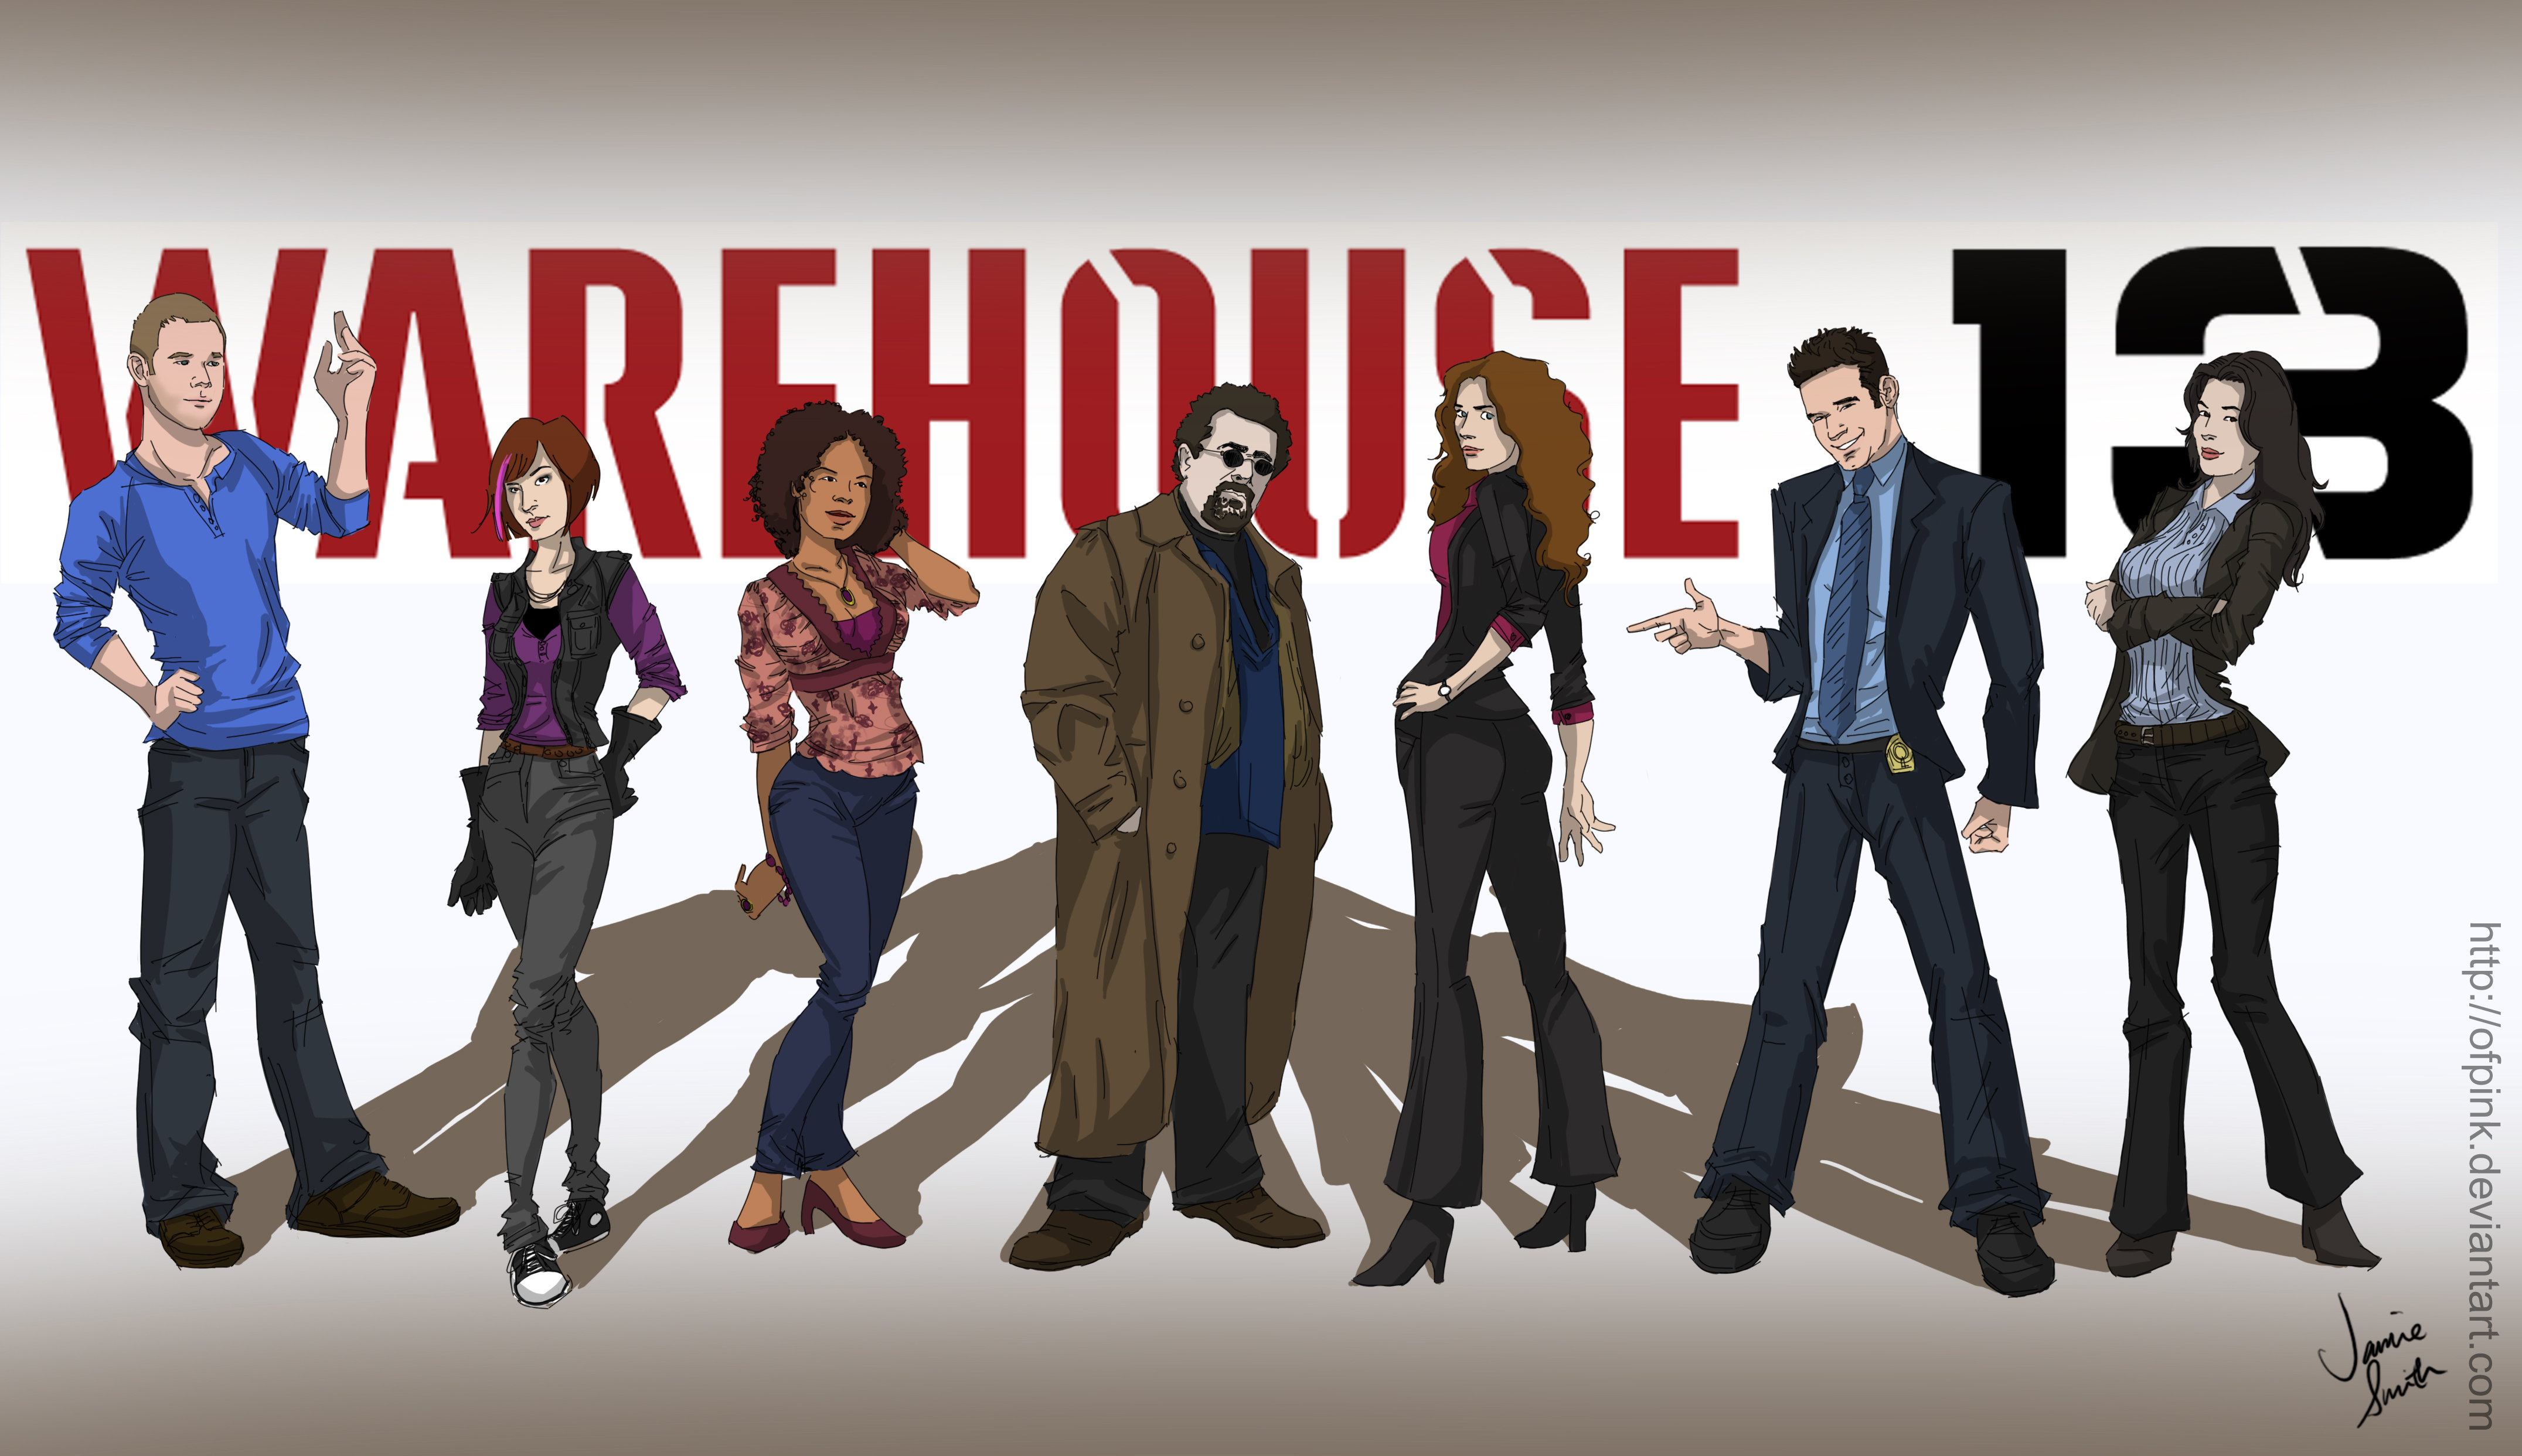 HQ Warehouse 13 Wallpapers | File 2382.61Kb